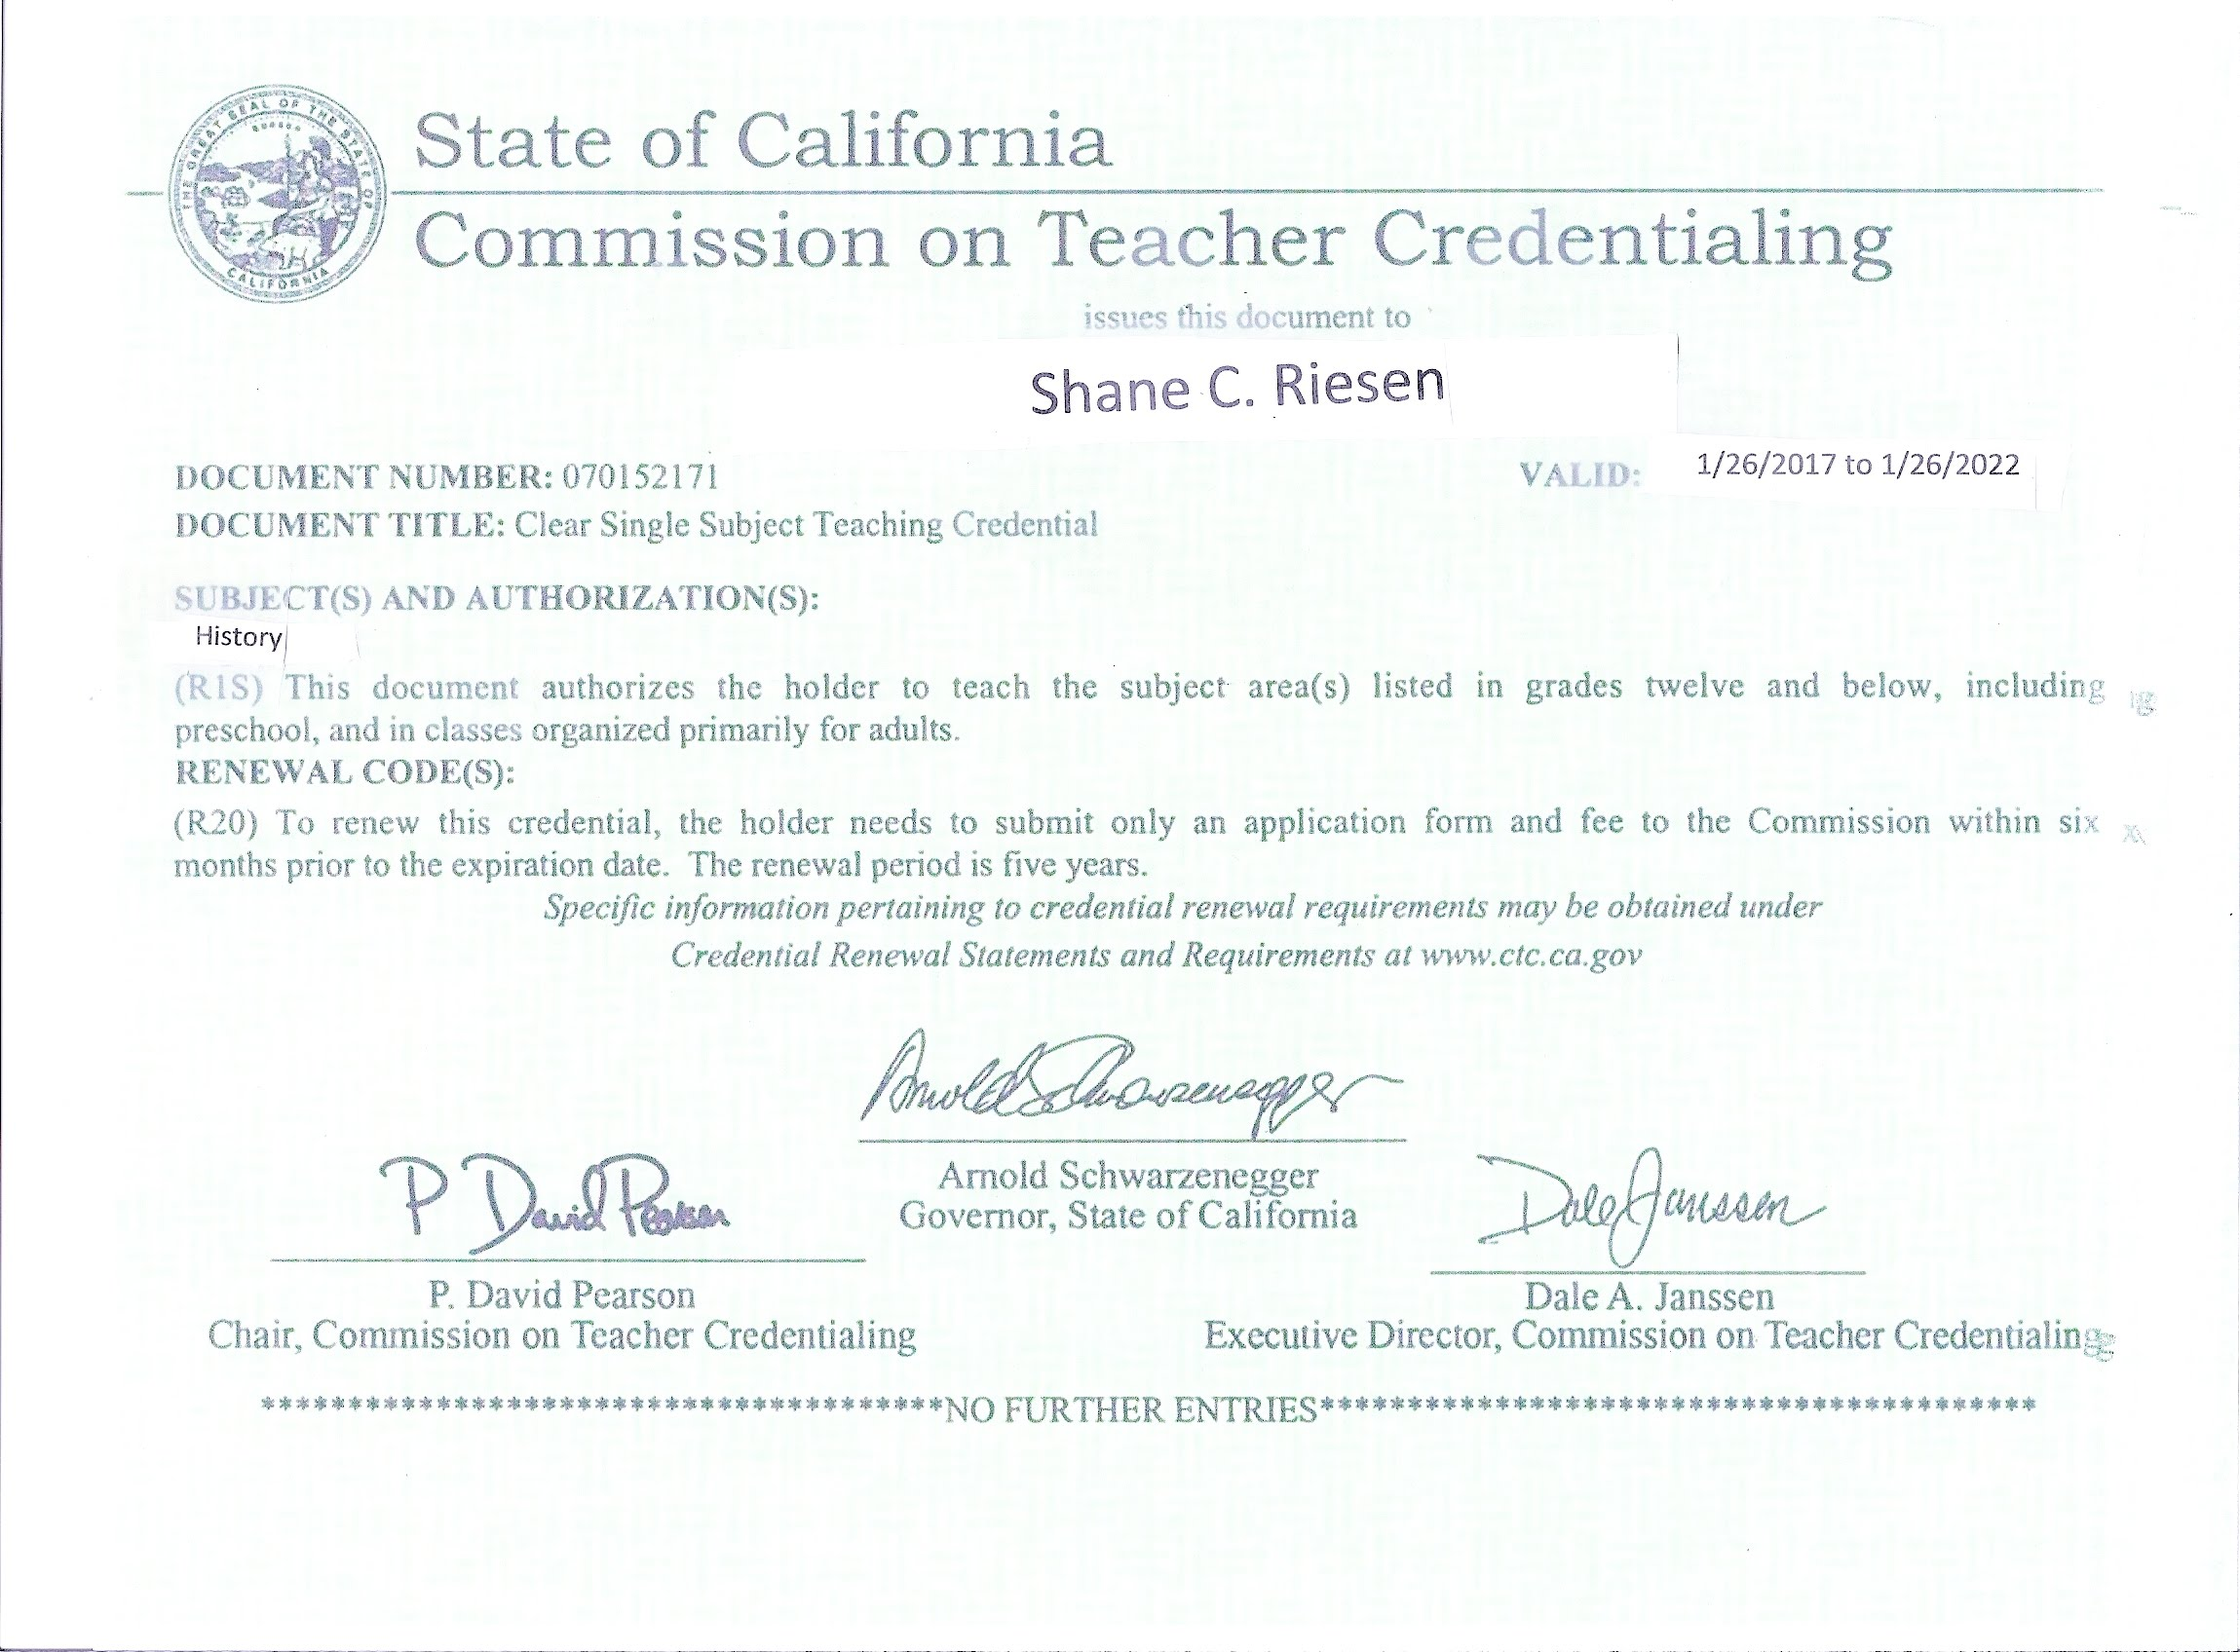 Certification Here Is My Certification For Review Below Are My